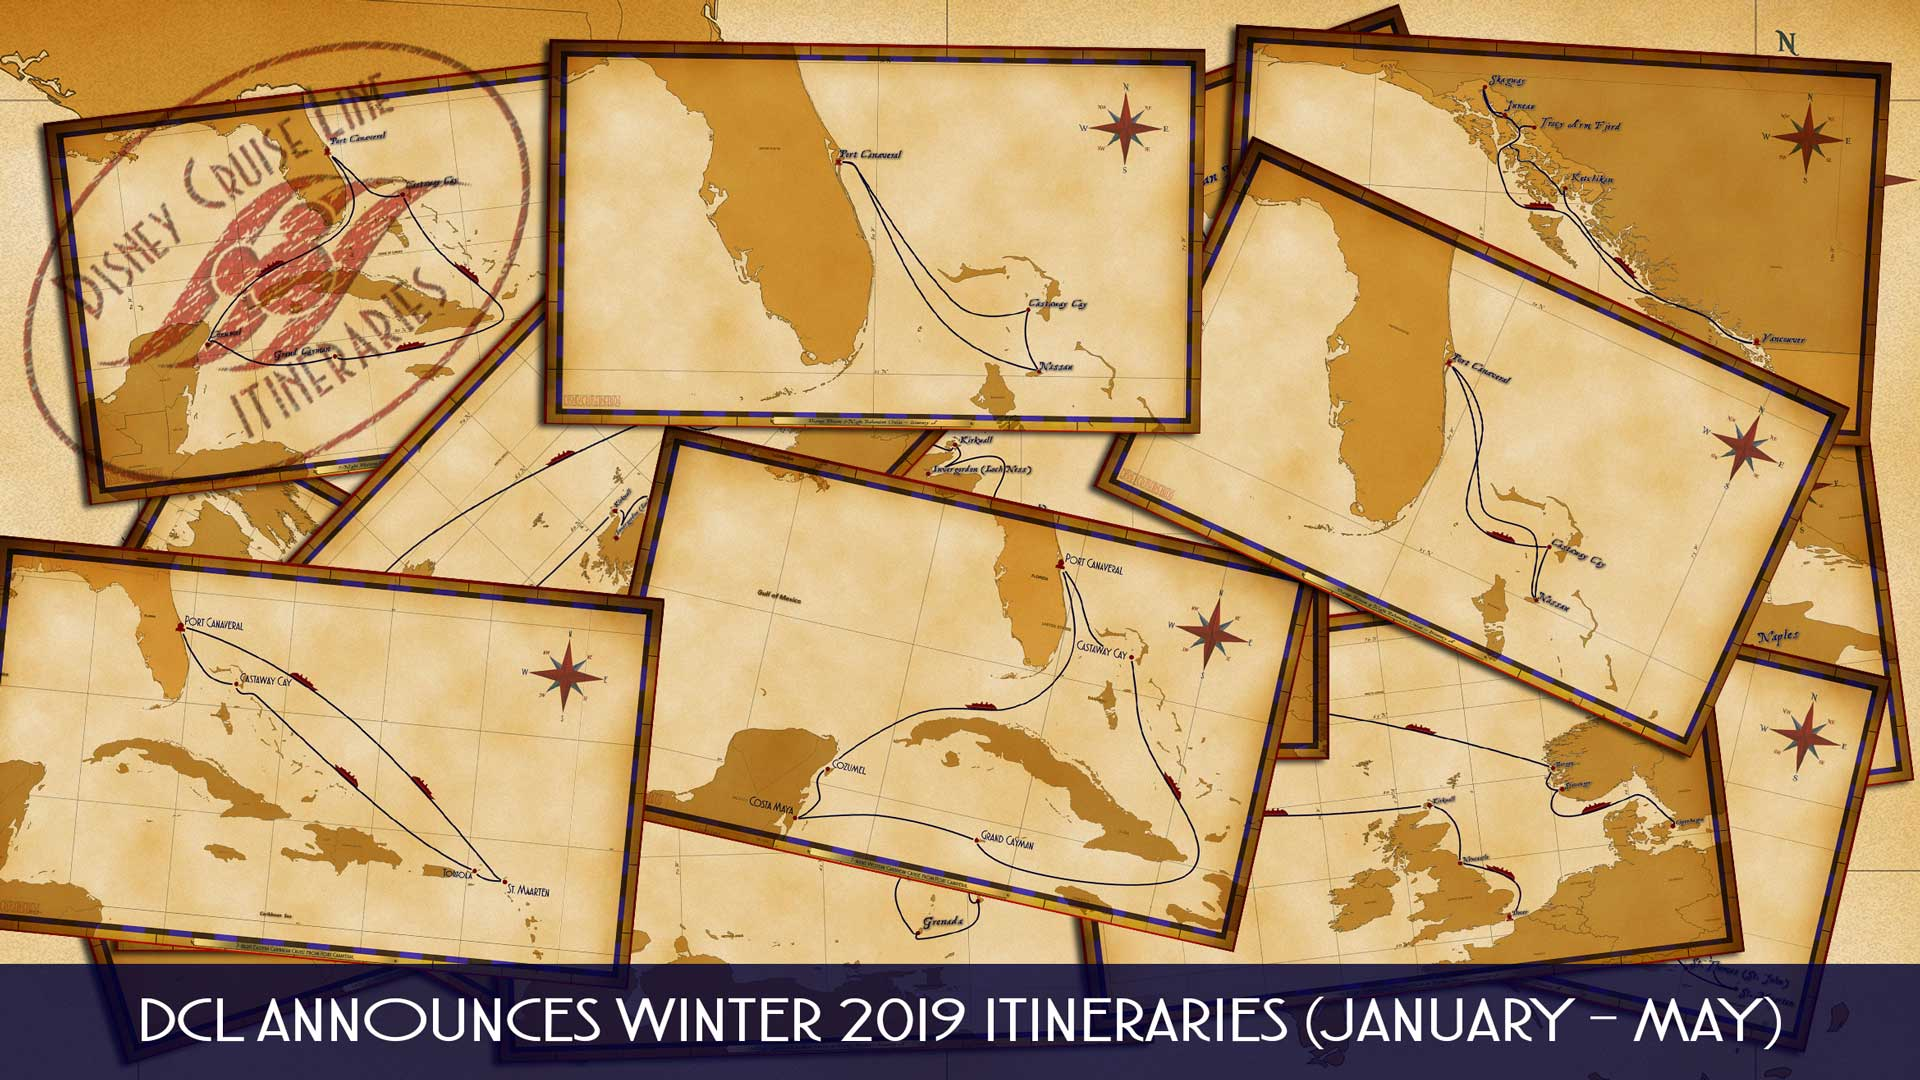 DCL Itinerary Release Winter 2019